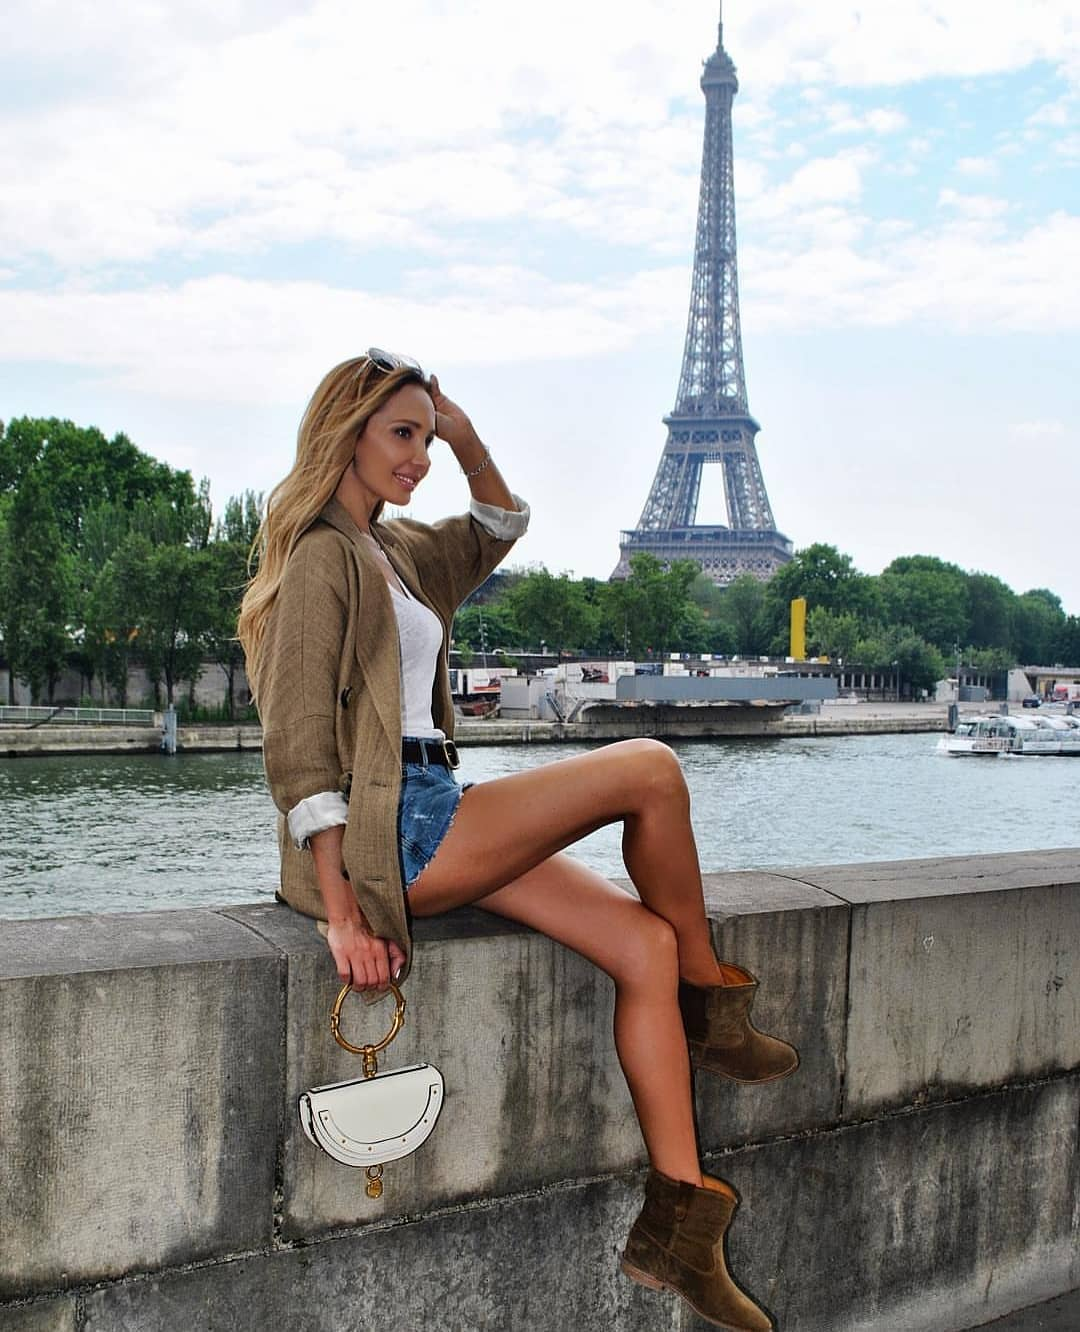 Beige-Brown Blazer With Blue Denim Shorts And Ankle Boots For Spring In Paris 2020